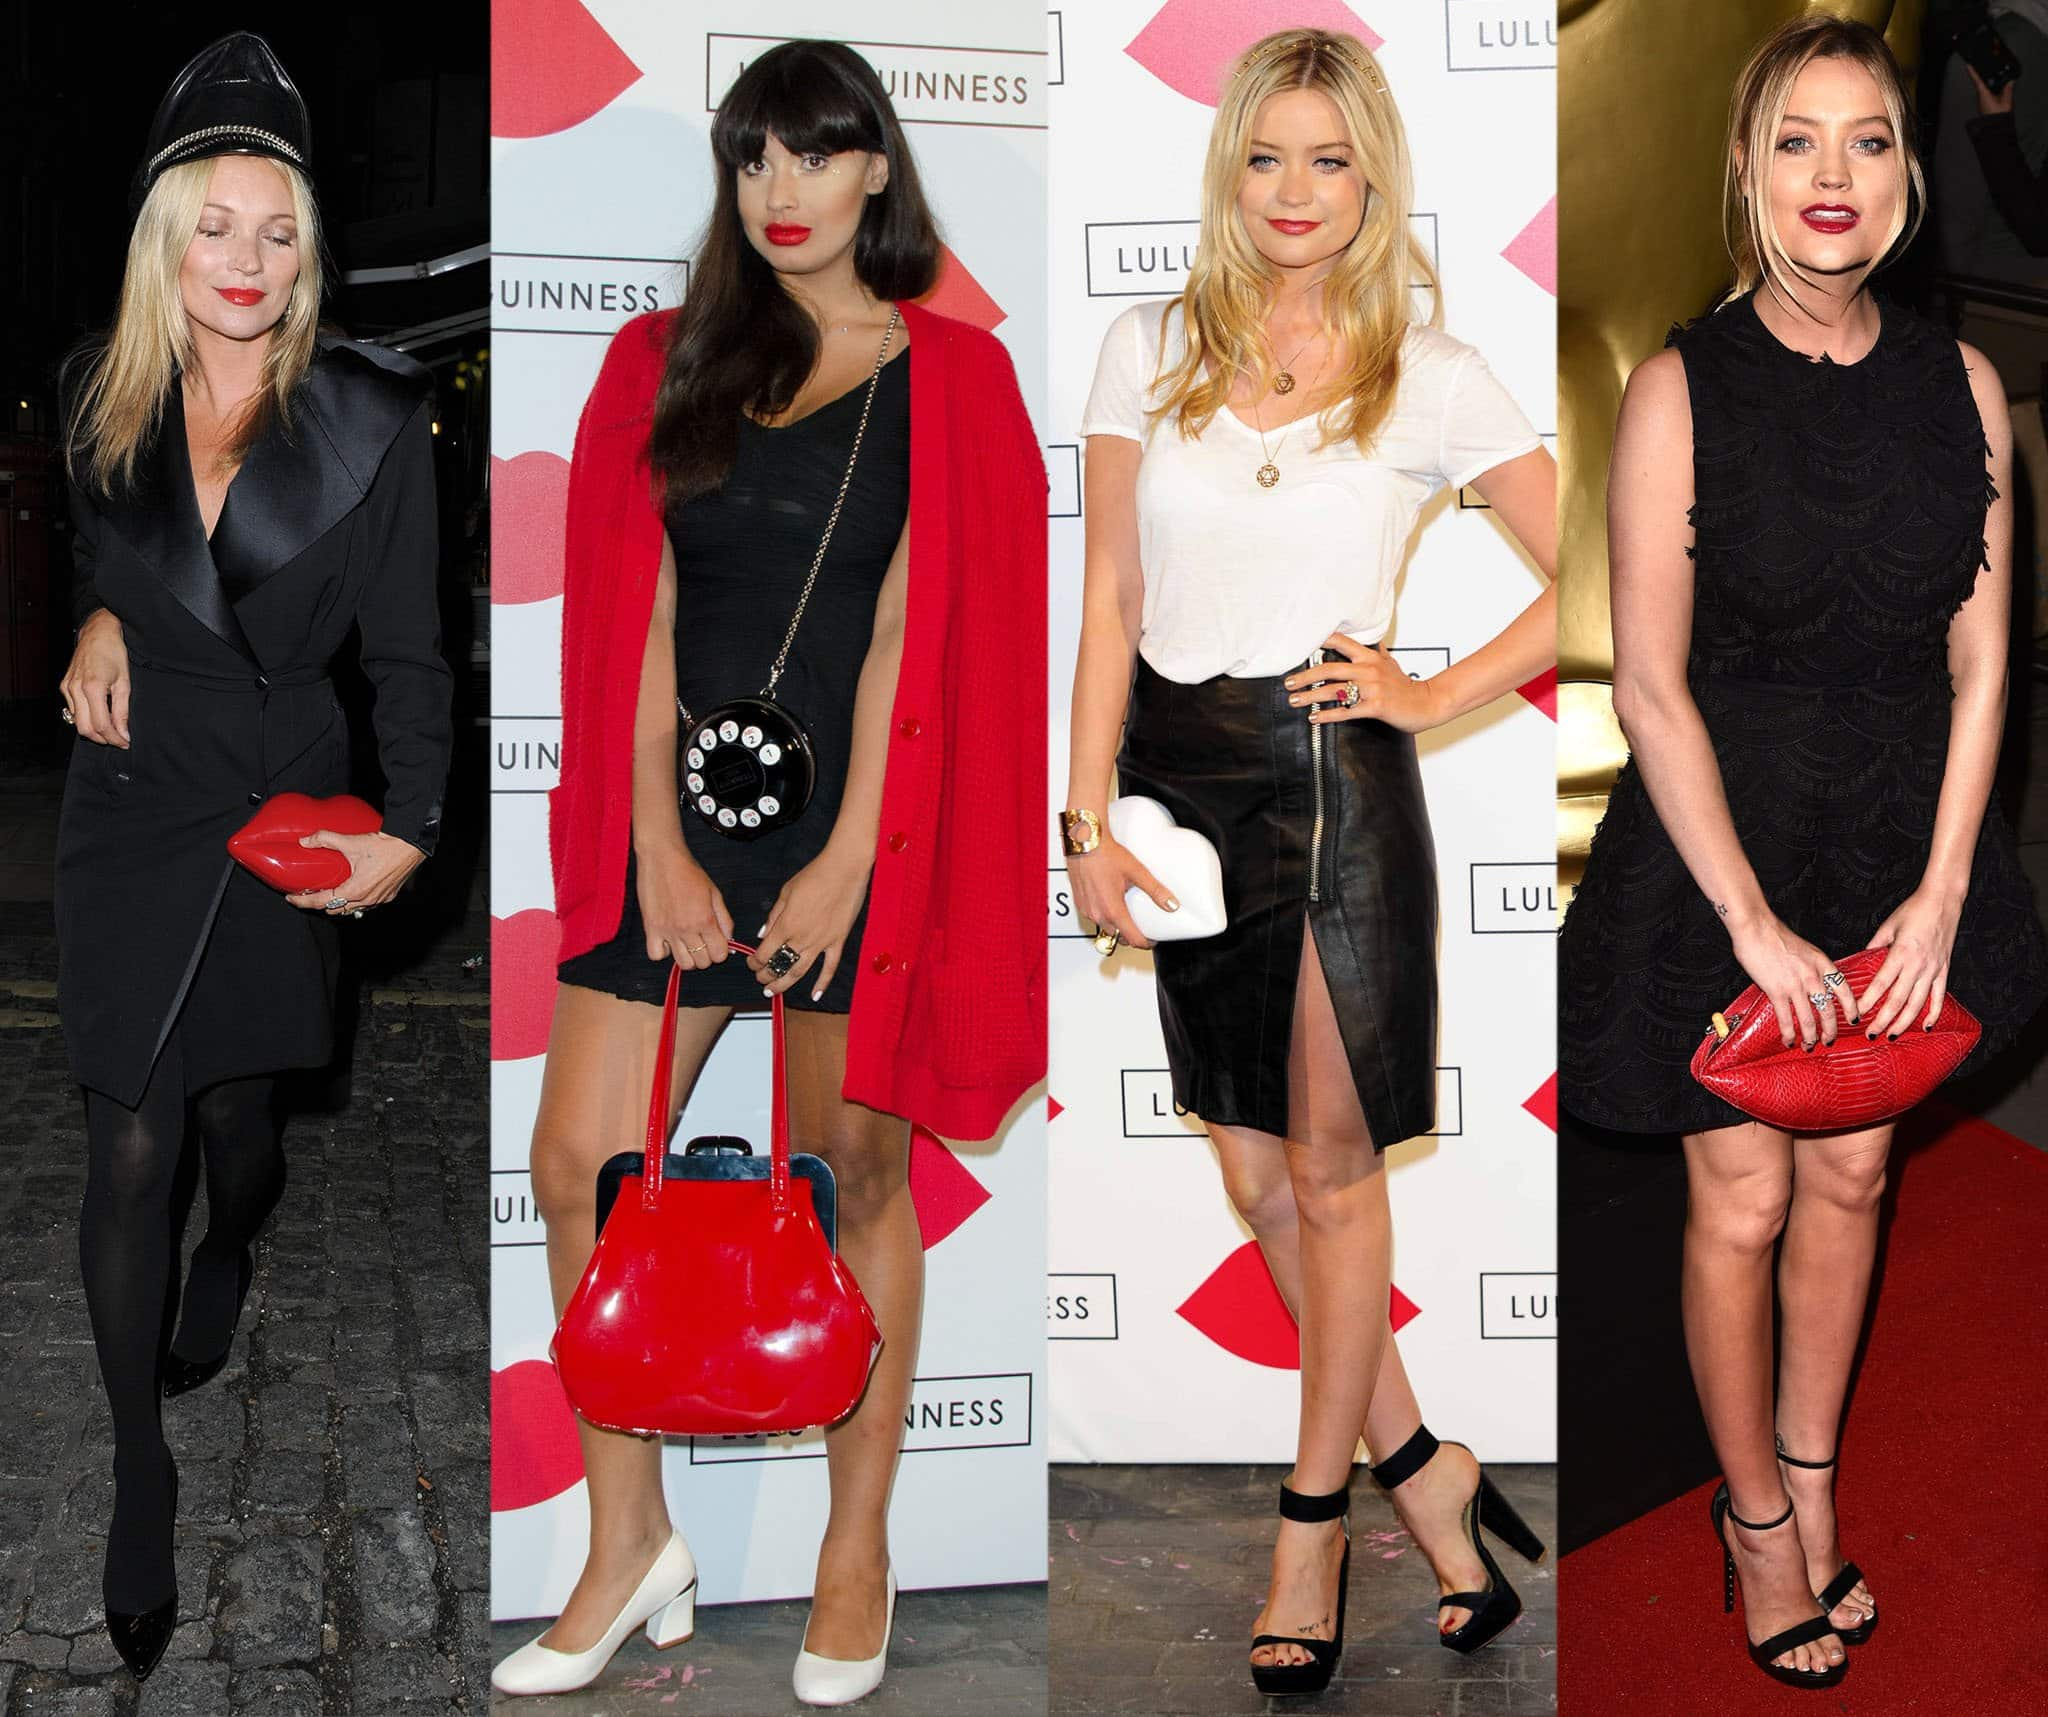 Kate Moss, Jameela Jamil, and Laura Whitmore carrying Lulu Guinness' popular lips clutch